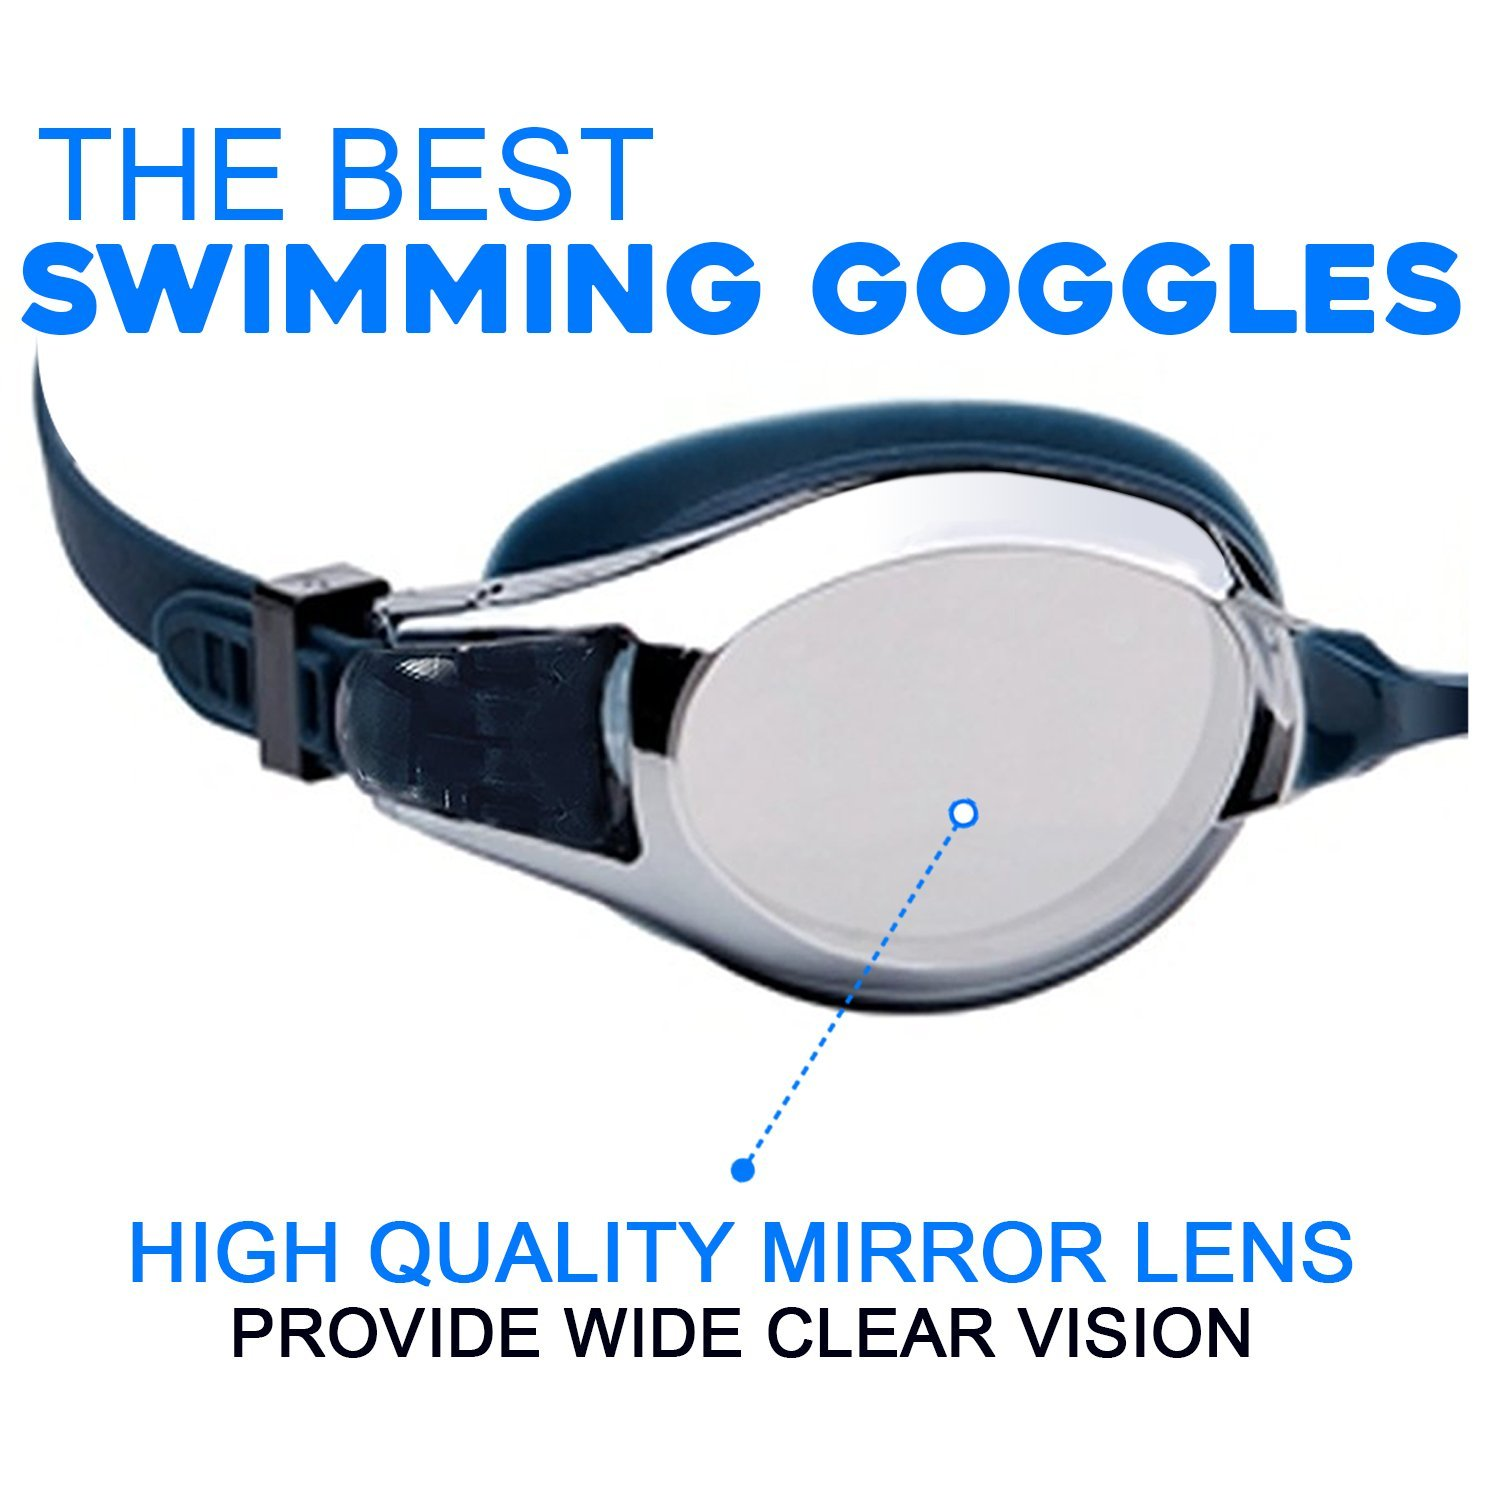 the best goggles  Amazon.com : Swim Goggles, The Best Swimming Goggles Anti Fog UV ...